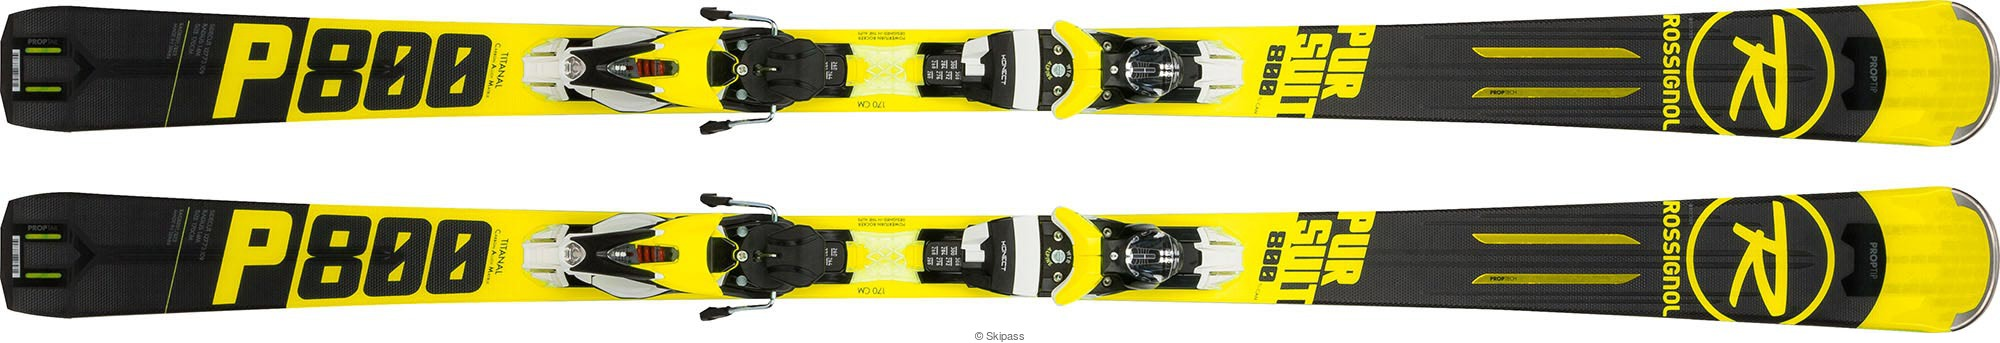 Rossignol Pursuit 800 TI CAM